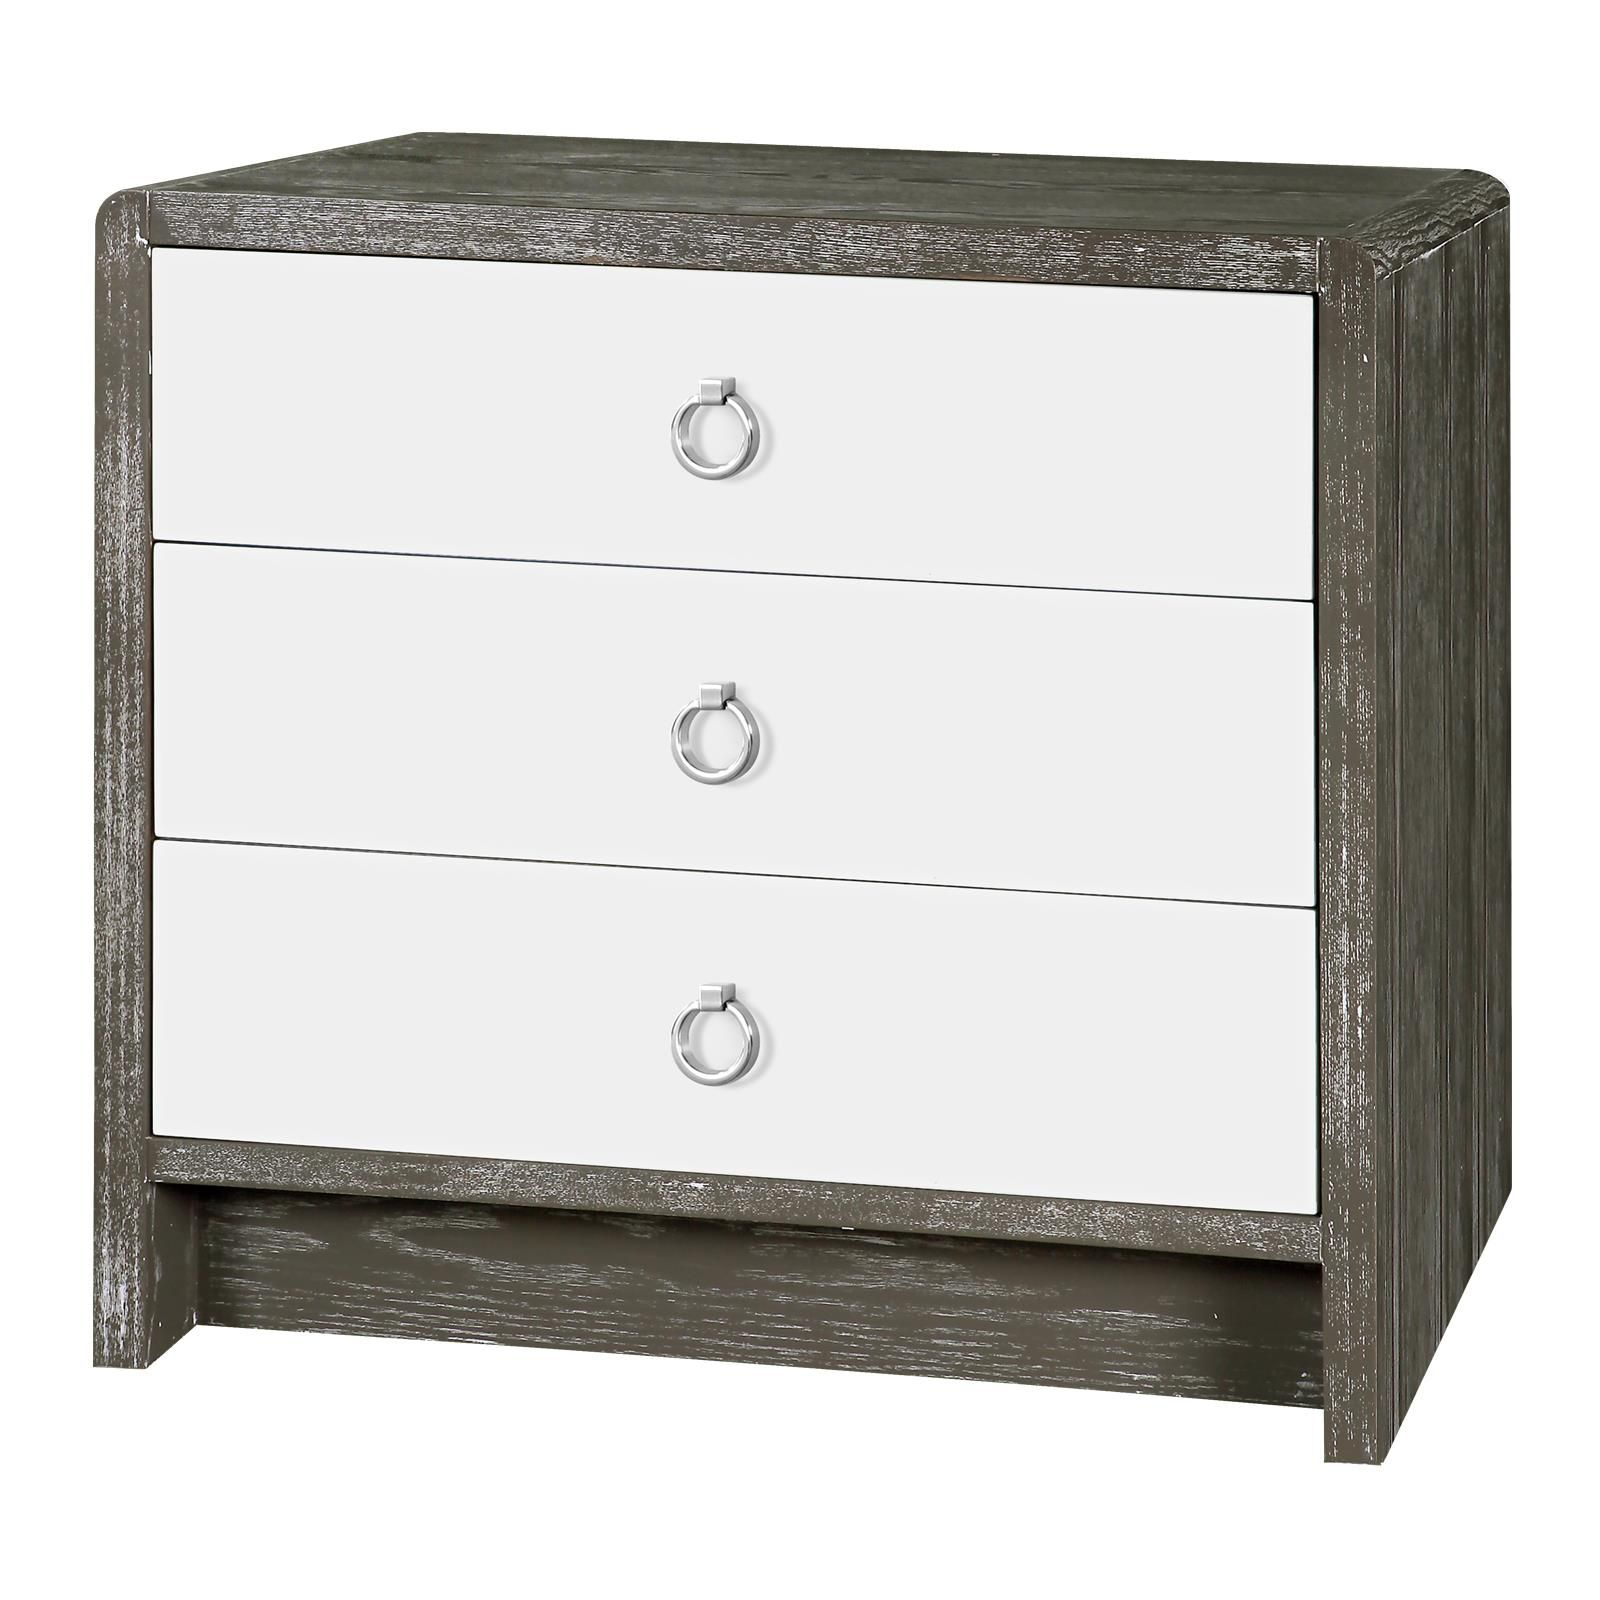 Charmant Niagara 3 Drawer Side Table, Gray   Bungalow 5 Boys Nightstand